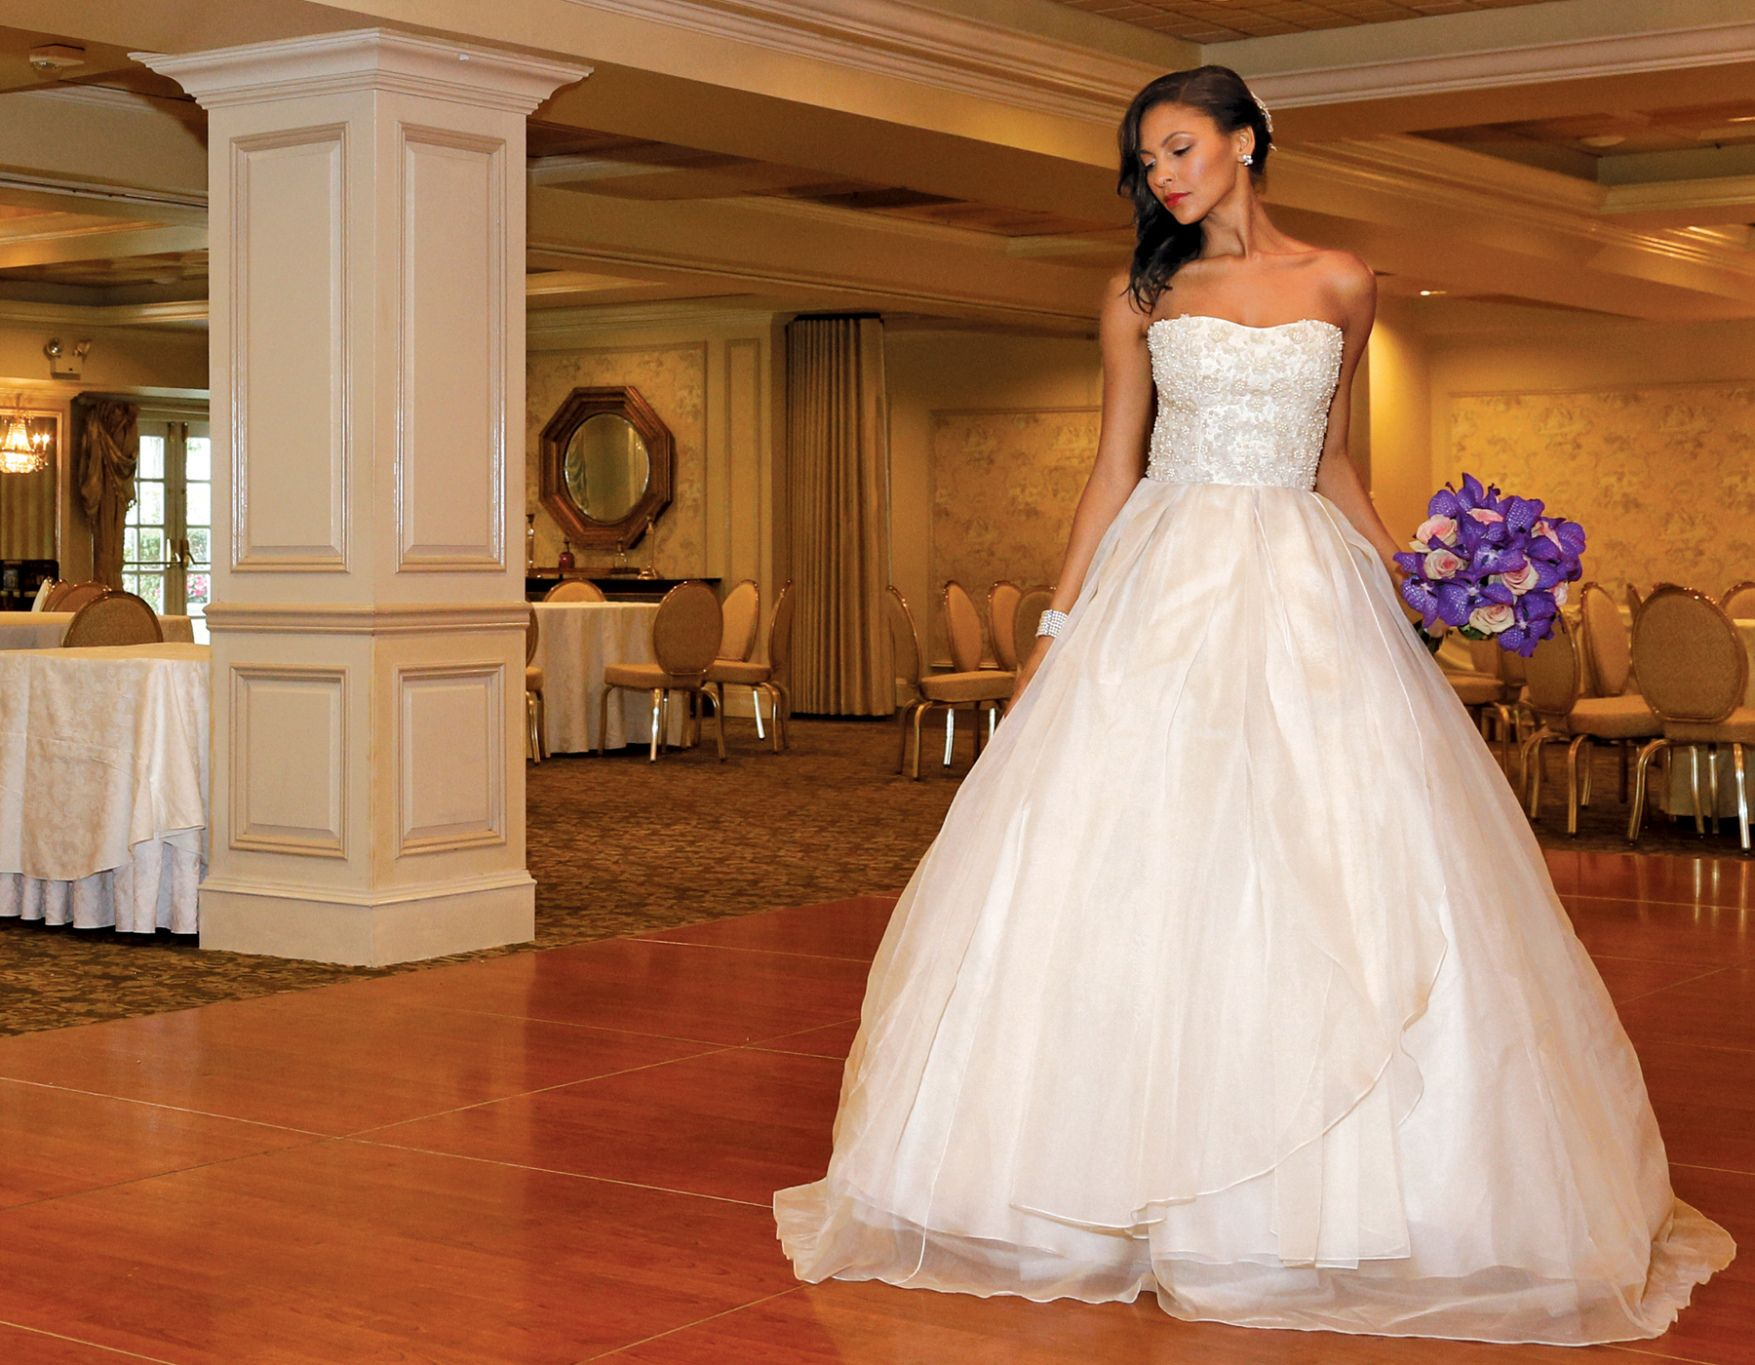 Awesome 70+ Wedding Dresses Nj   How To Dress For A Wedding Check More At Http